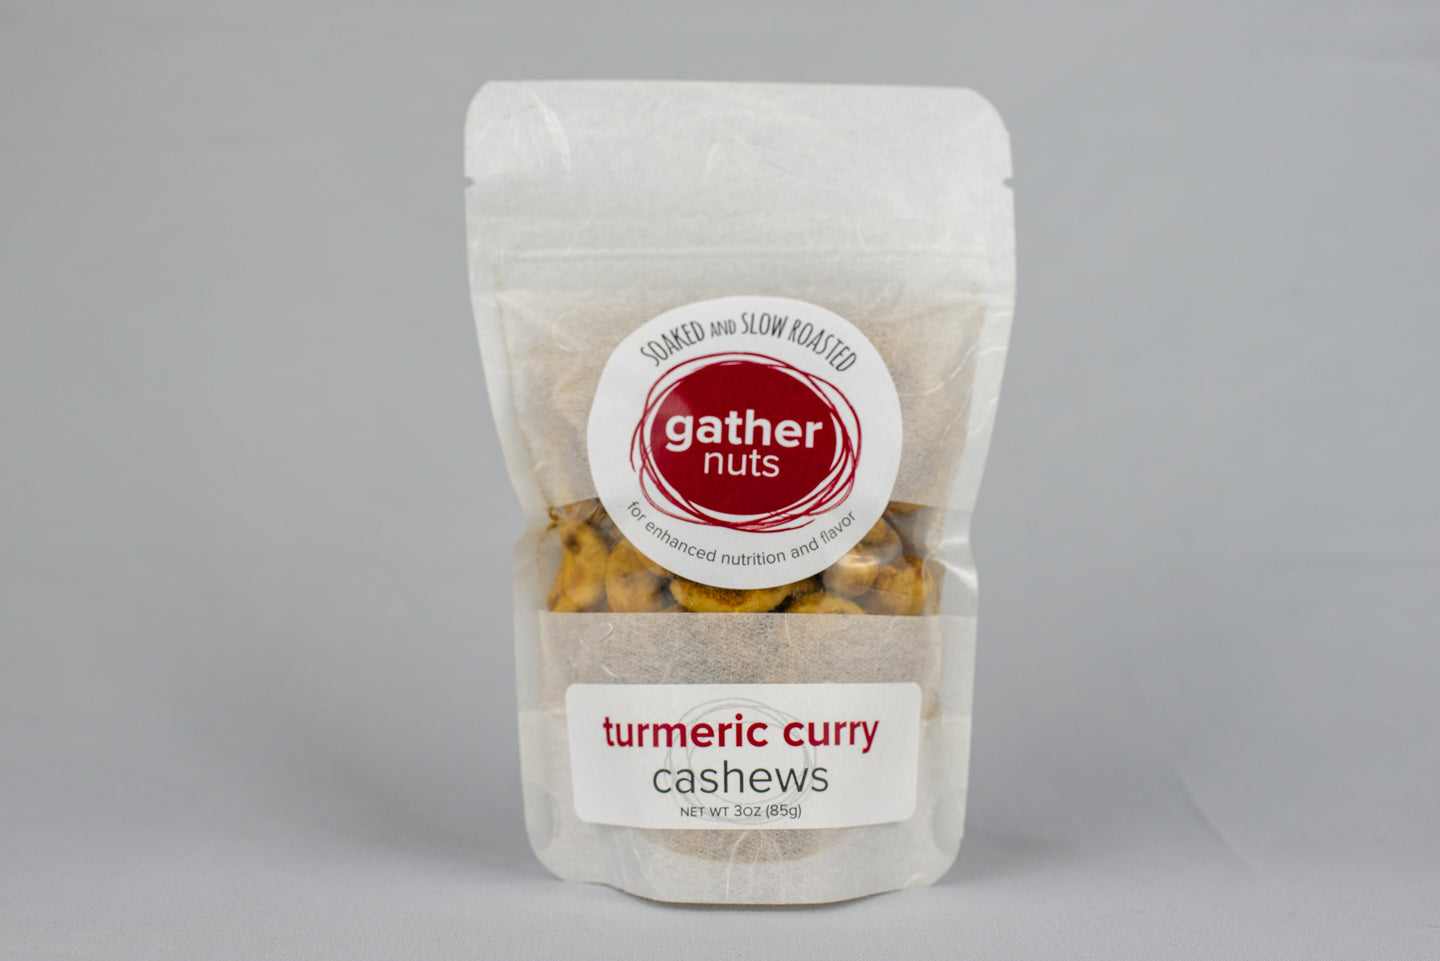 Turmeric Curry Cashews